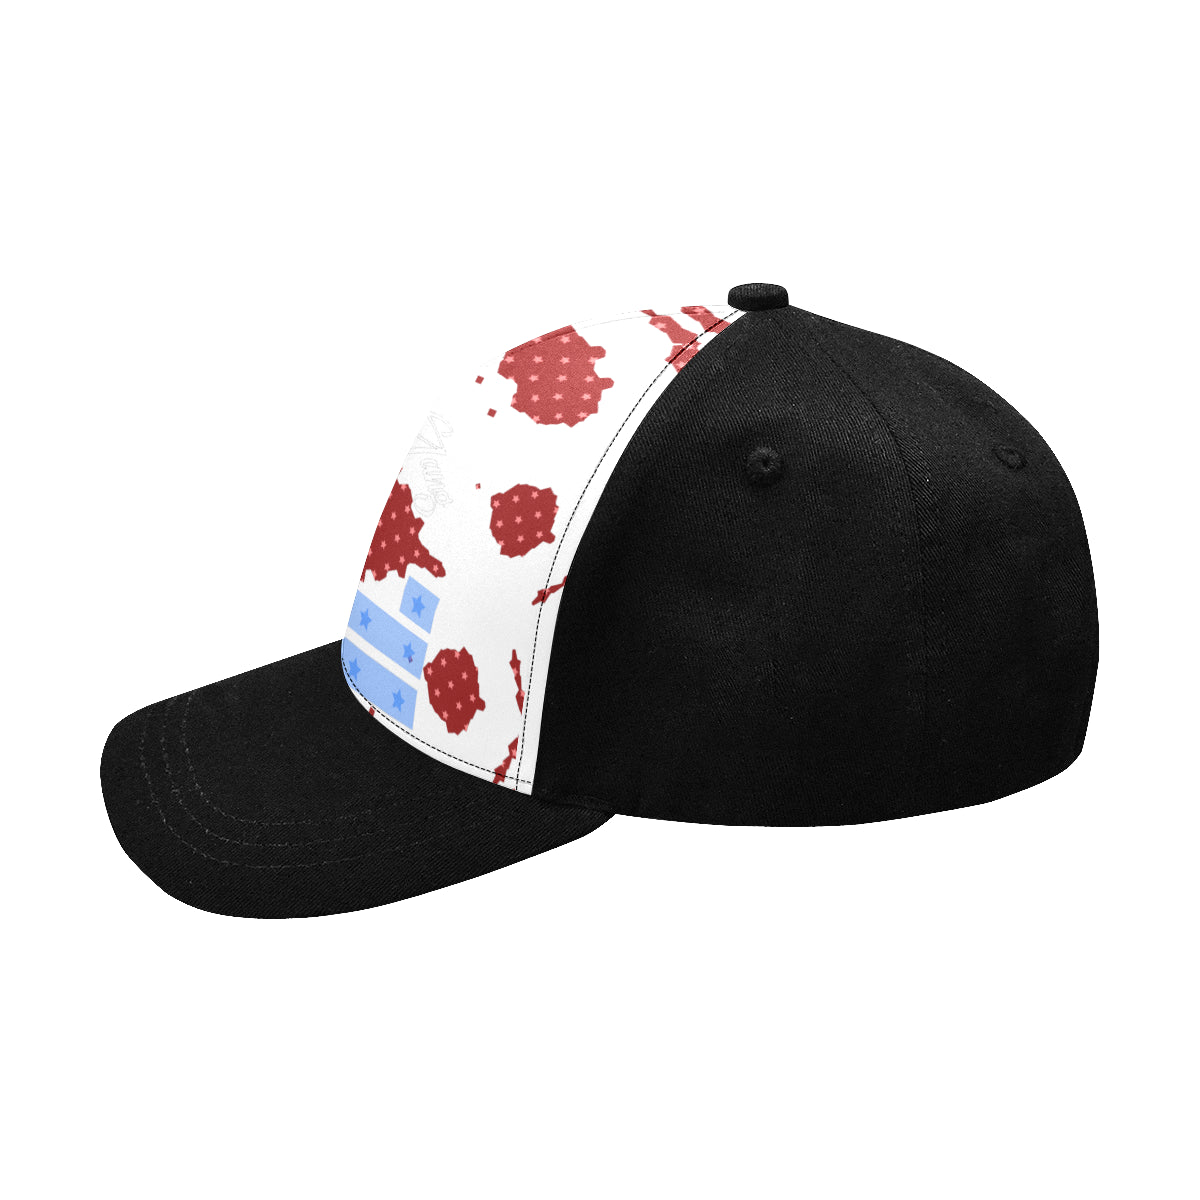 LOLLI GANG Baseball Cap_white/black